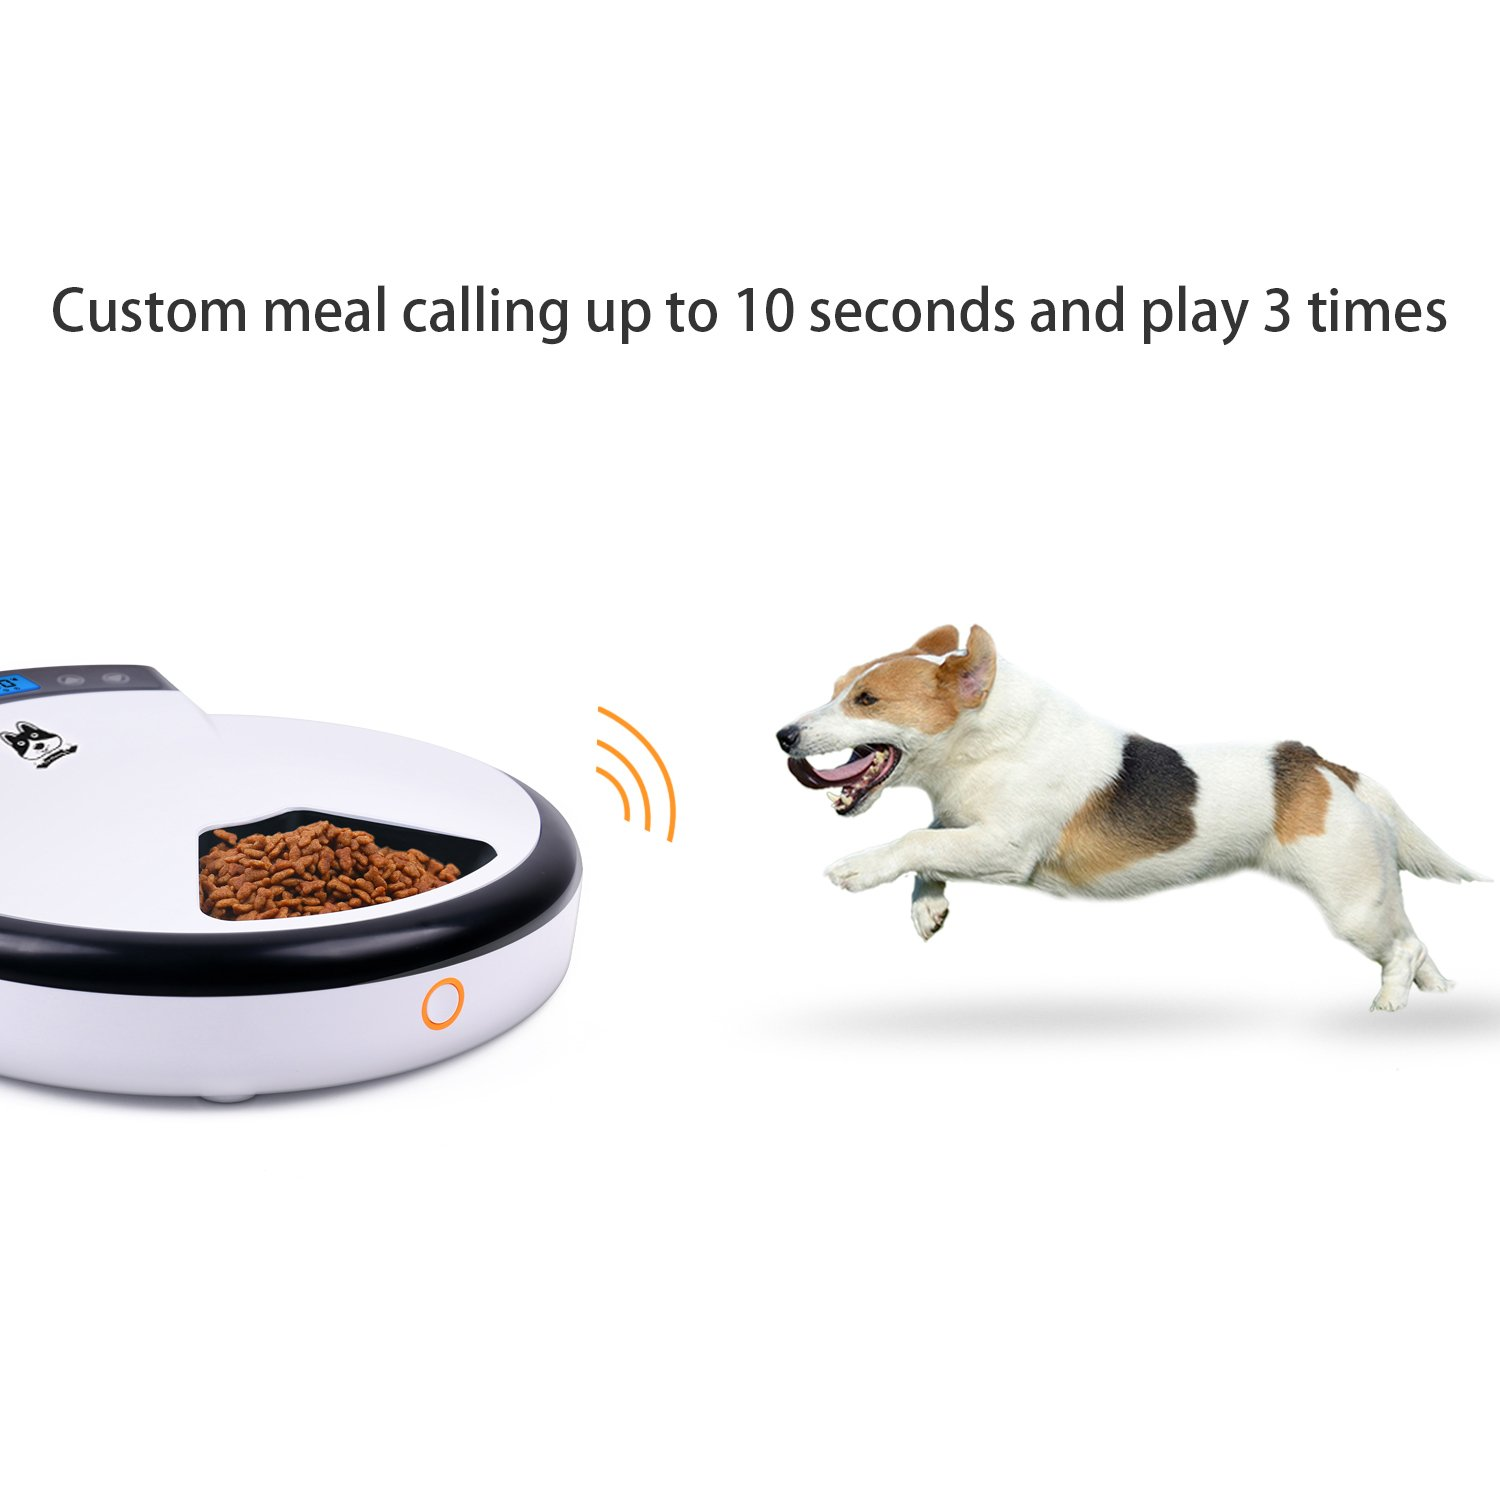 TDYNASTY DESIGN Automatic Pet Feeder for Dogs & Cats | Dry & Wet Food - 5 Meals, 5 x 240ml by TDYNASTY DESIGN (Image #4)